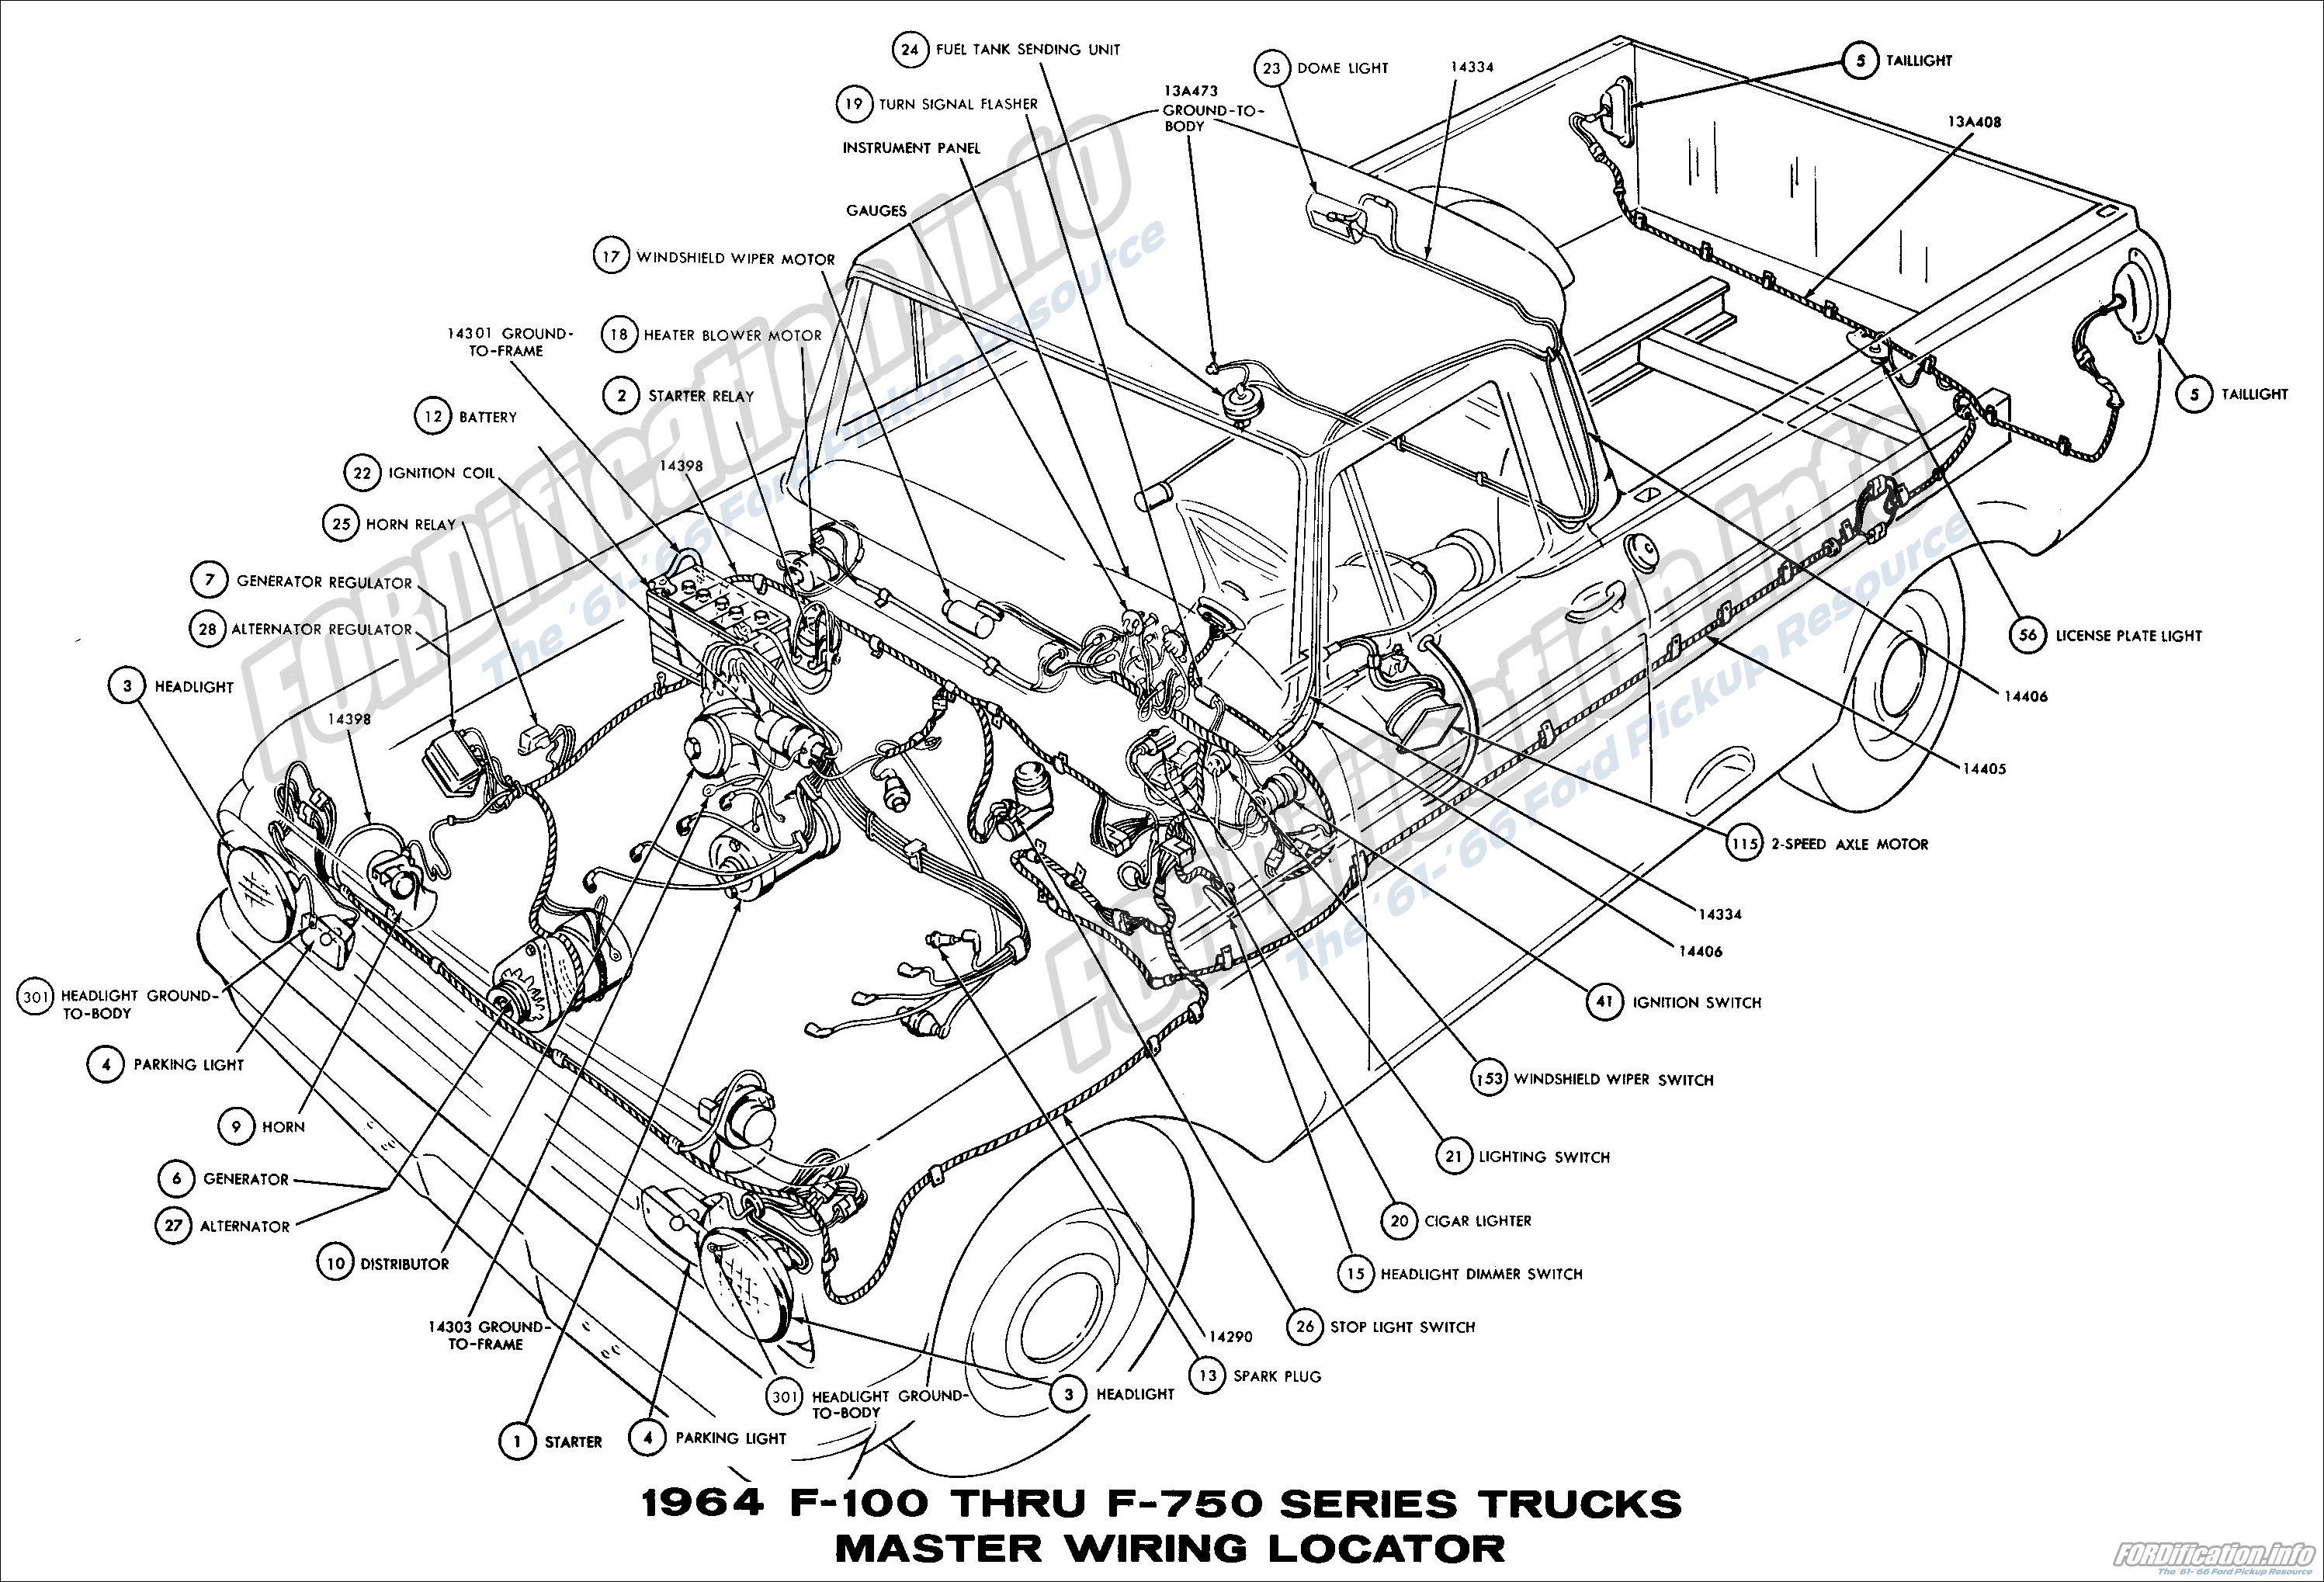 1966 Ford F100 Alternator Wiring Diagram - Wiring Diagram Srv  Ford F Alternator Wiring Diagram on ford f150 wiring diagram, 1971 ford f100 power steering, 1946 ford truck wiring diagram, 1971 ford f100 carburetor, 1970 ford wiring diagram, 1971 ford f100 tires, 1992 chevy silverado 1500 wiring diagram, 1971 ford f100 parts, ford 800 wiring diagram, basic ford solenoid wiring diagram, 1971 ford f100 specifications, 1971 ford f100 4x4, 1971 chevrolet camaro wiring diagram, 1971 chevy nova wiring diagram, 1955 ford wiring diagram, 1971 oldsmobile cutlass wiring diagram, ford f-250 wiring diagram, 1971 chevrolet el camino wiring diagram, 1971 ford f100 engine, 1966 ford wiring diagram,